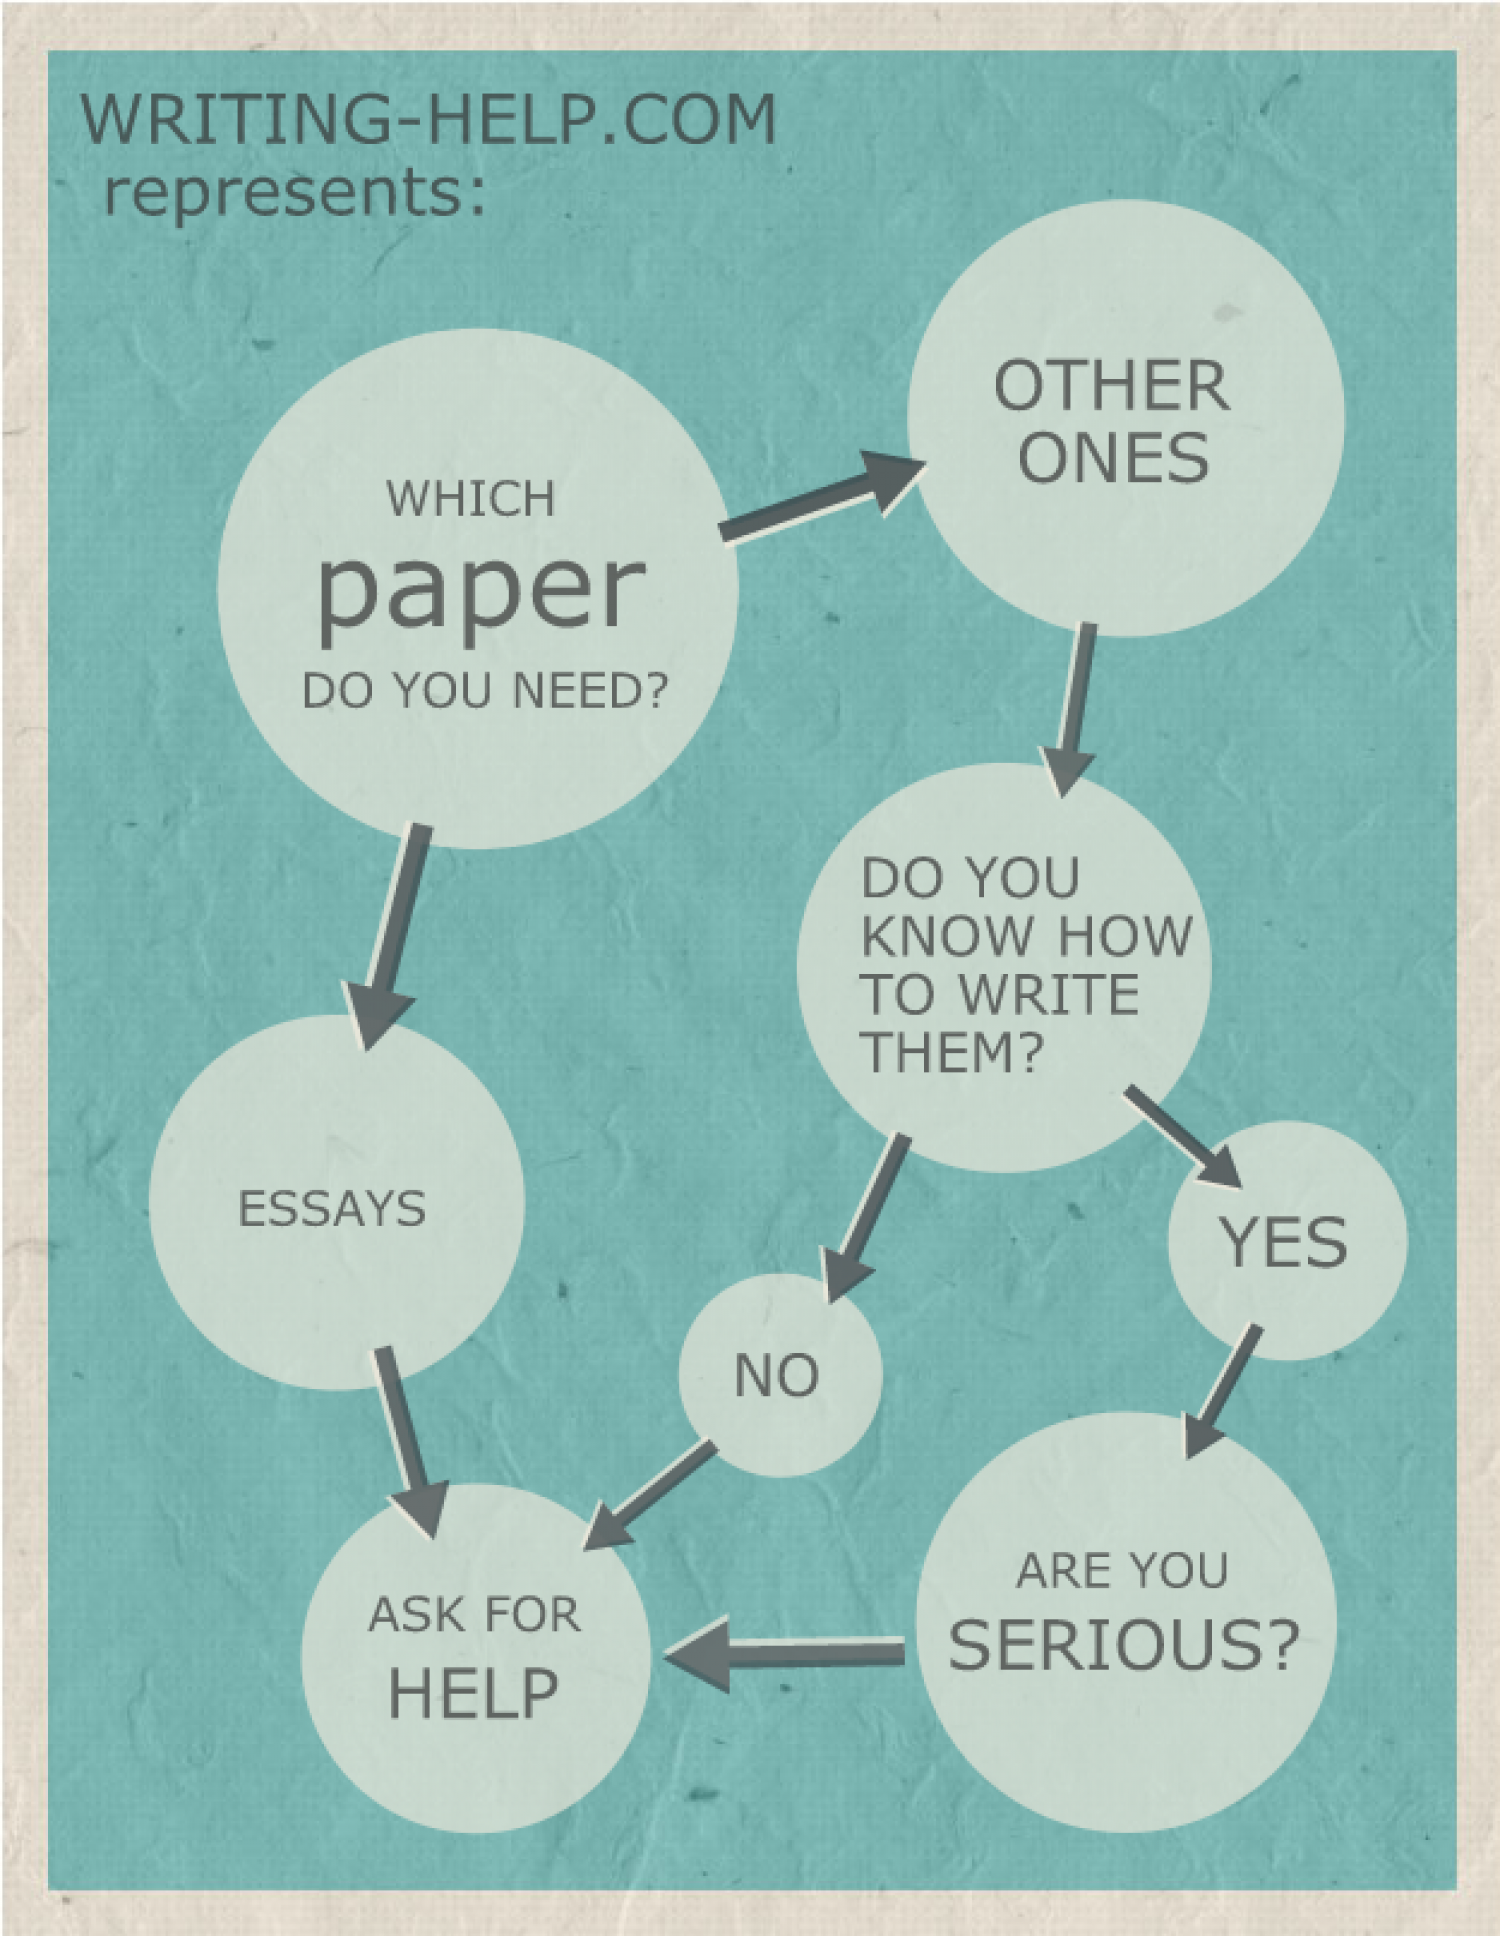 When You Need A Paper Infographic